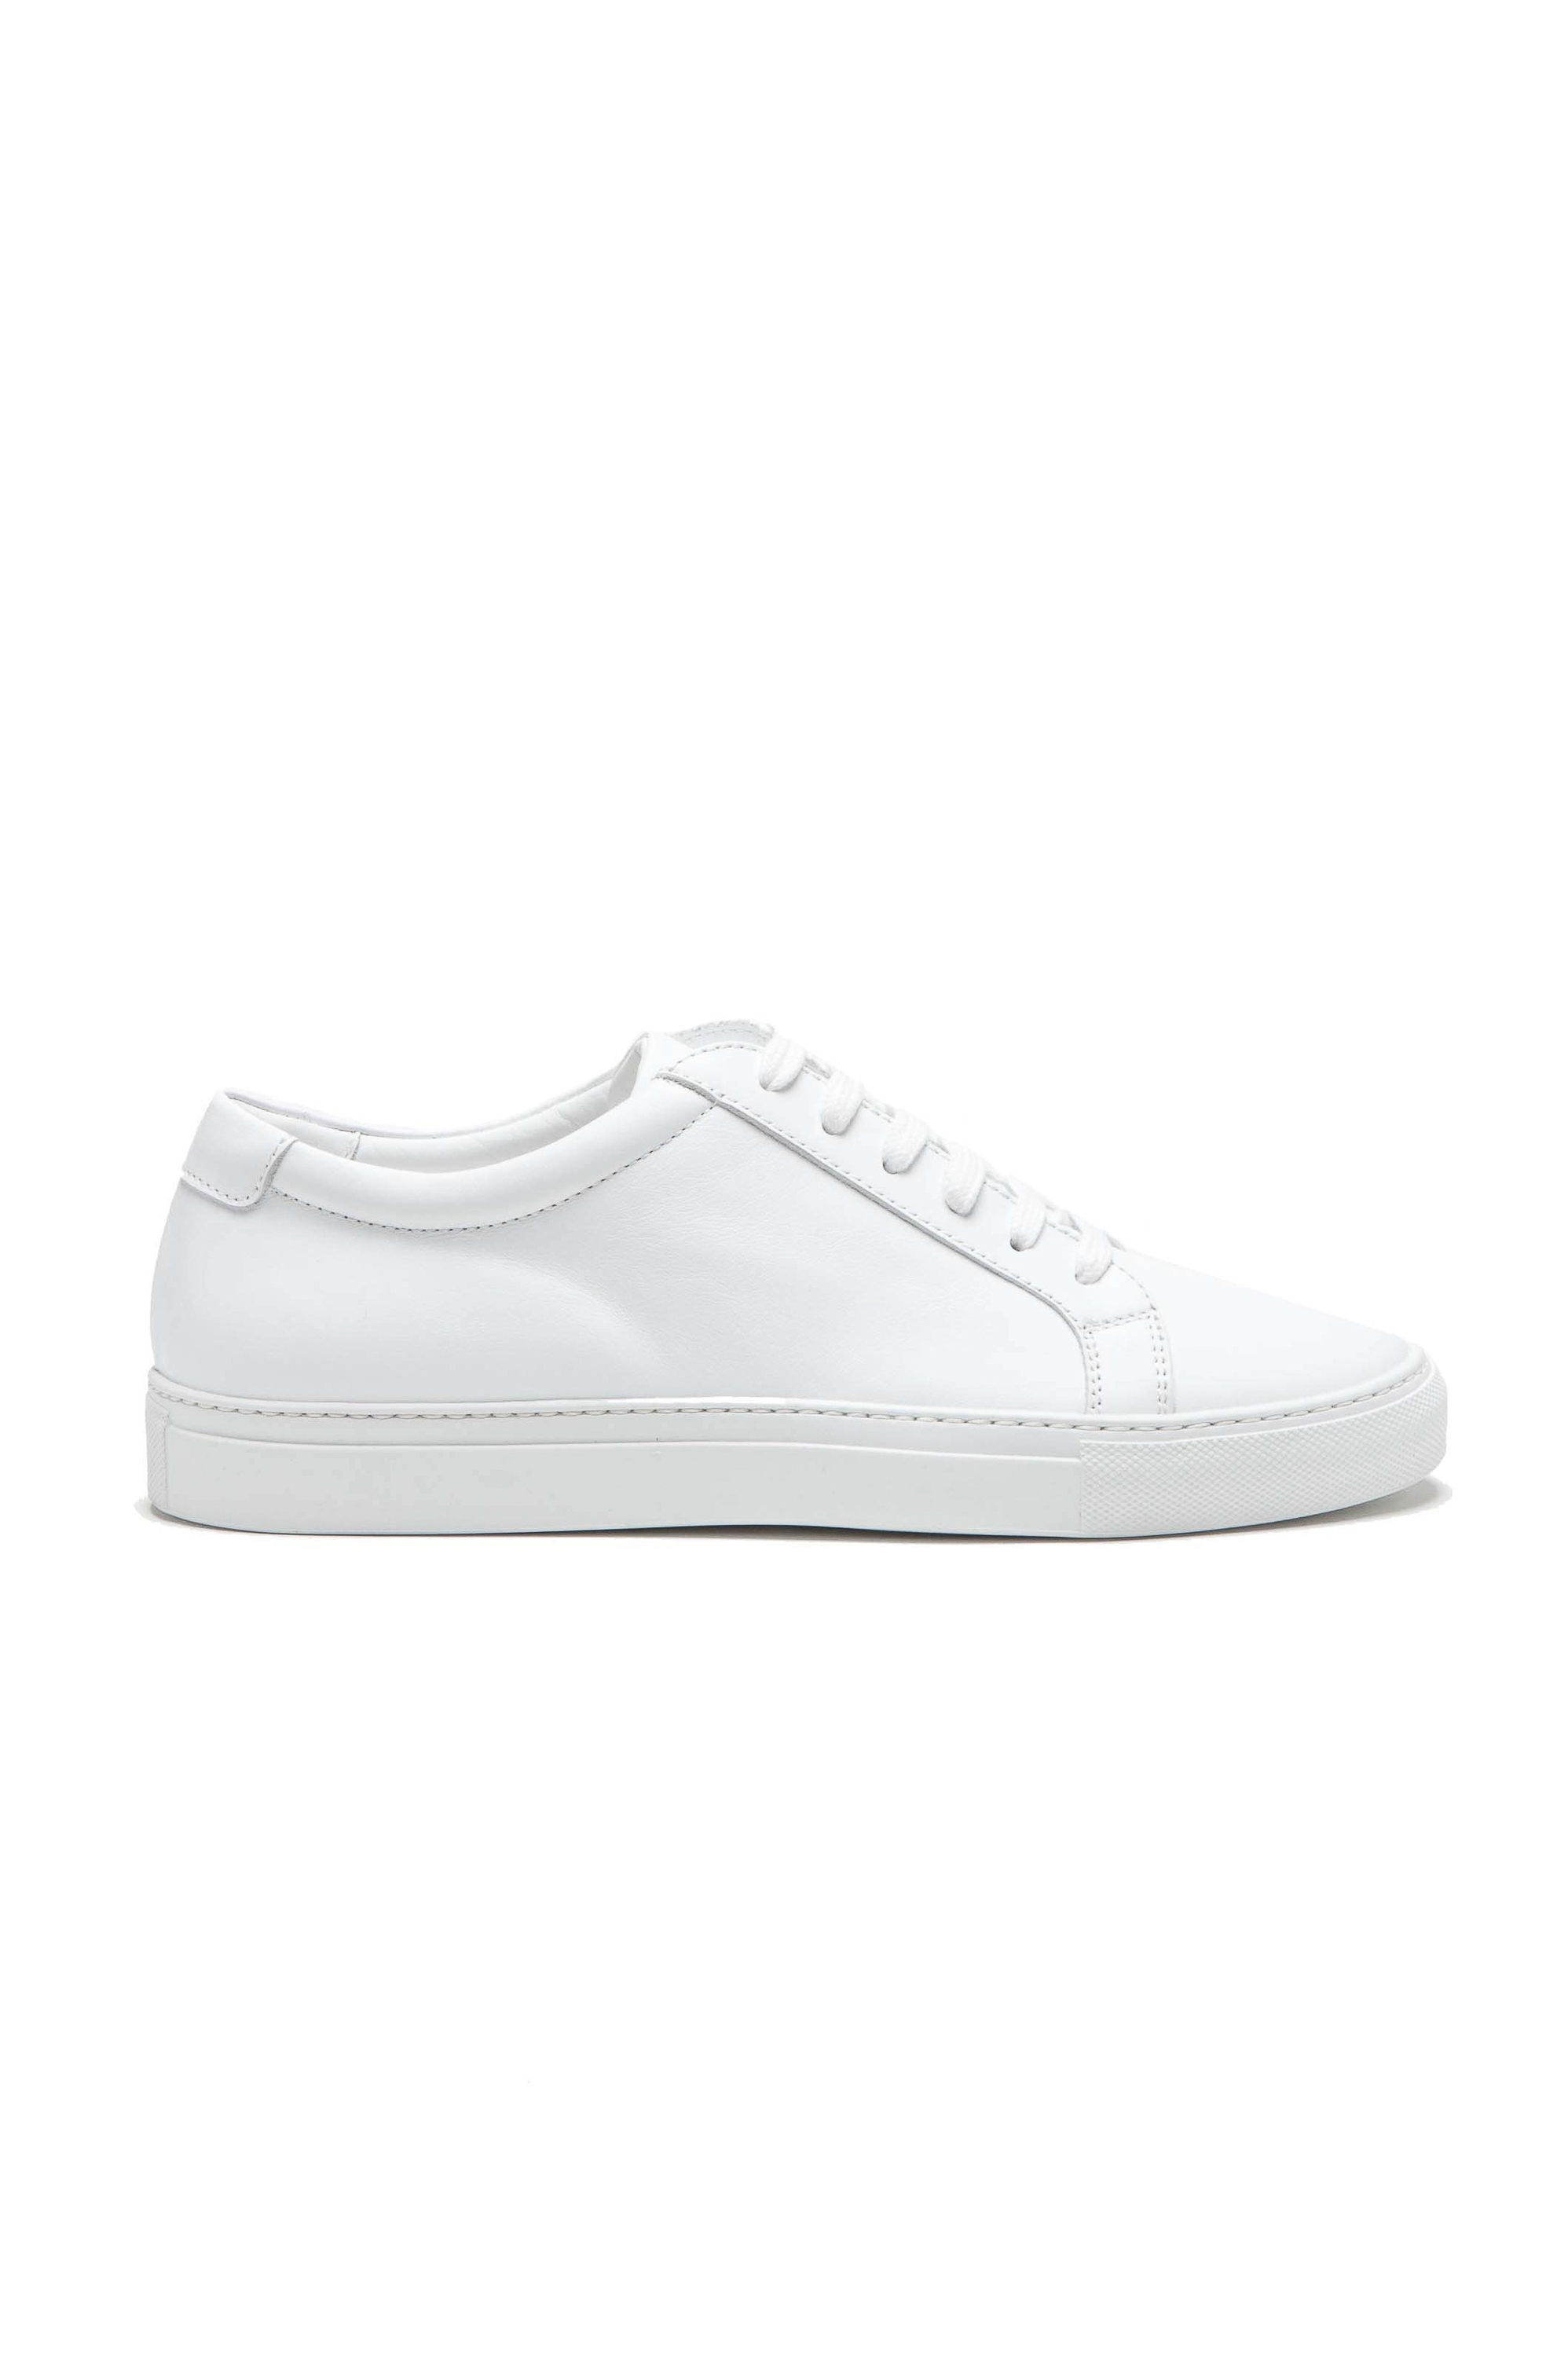 SBU 01526 Classic lace up sneakers in white calfskin leather 01